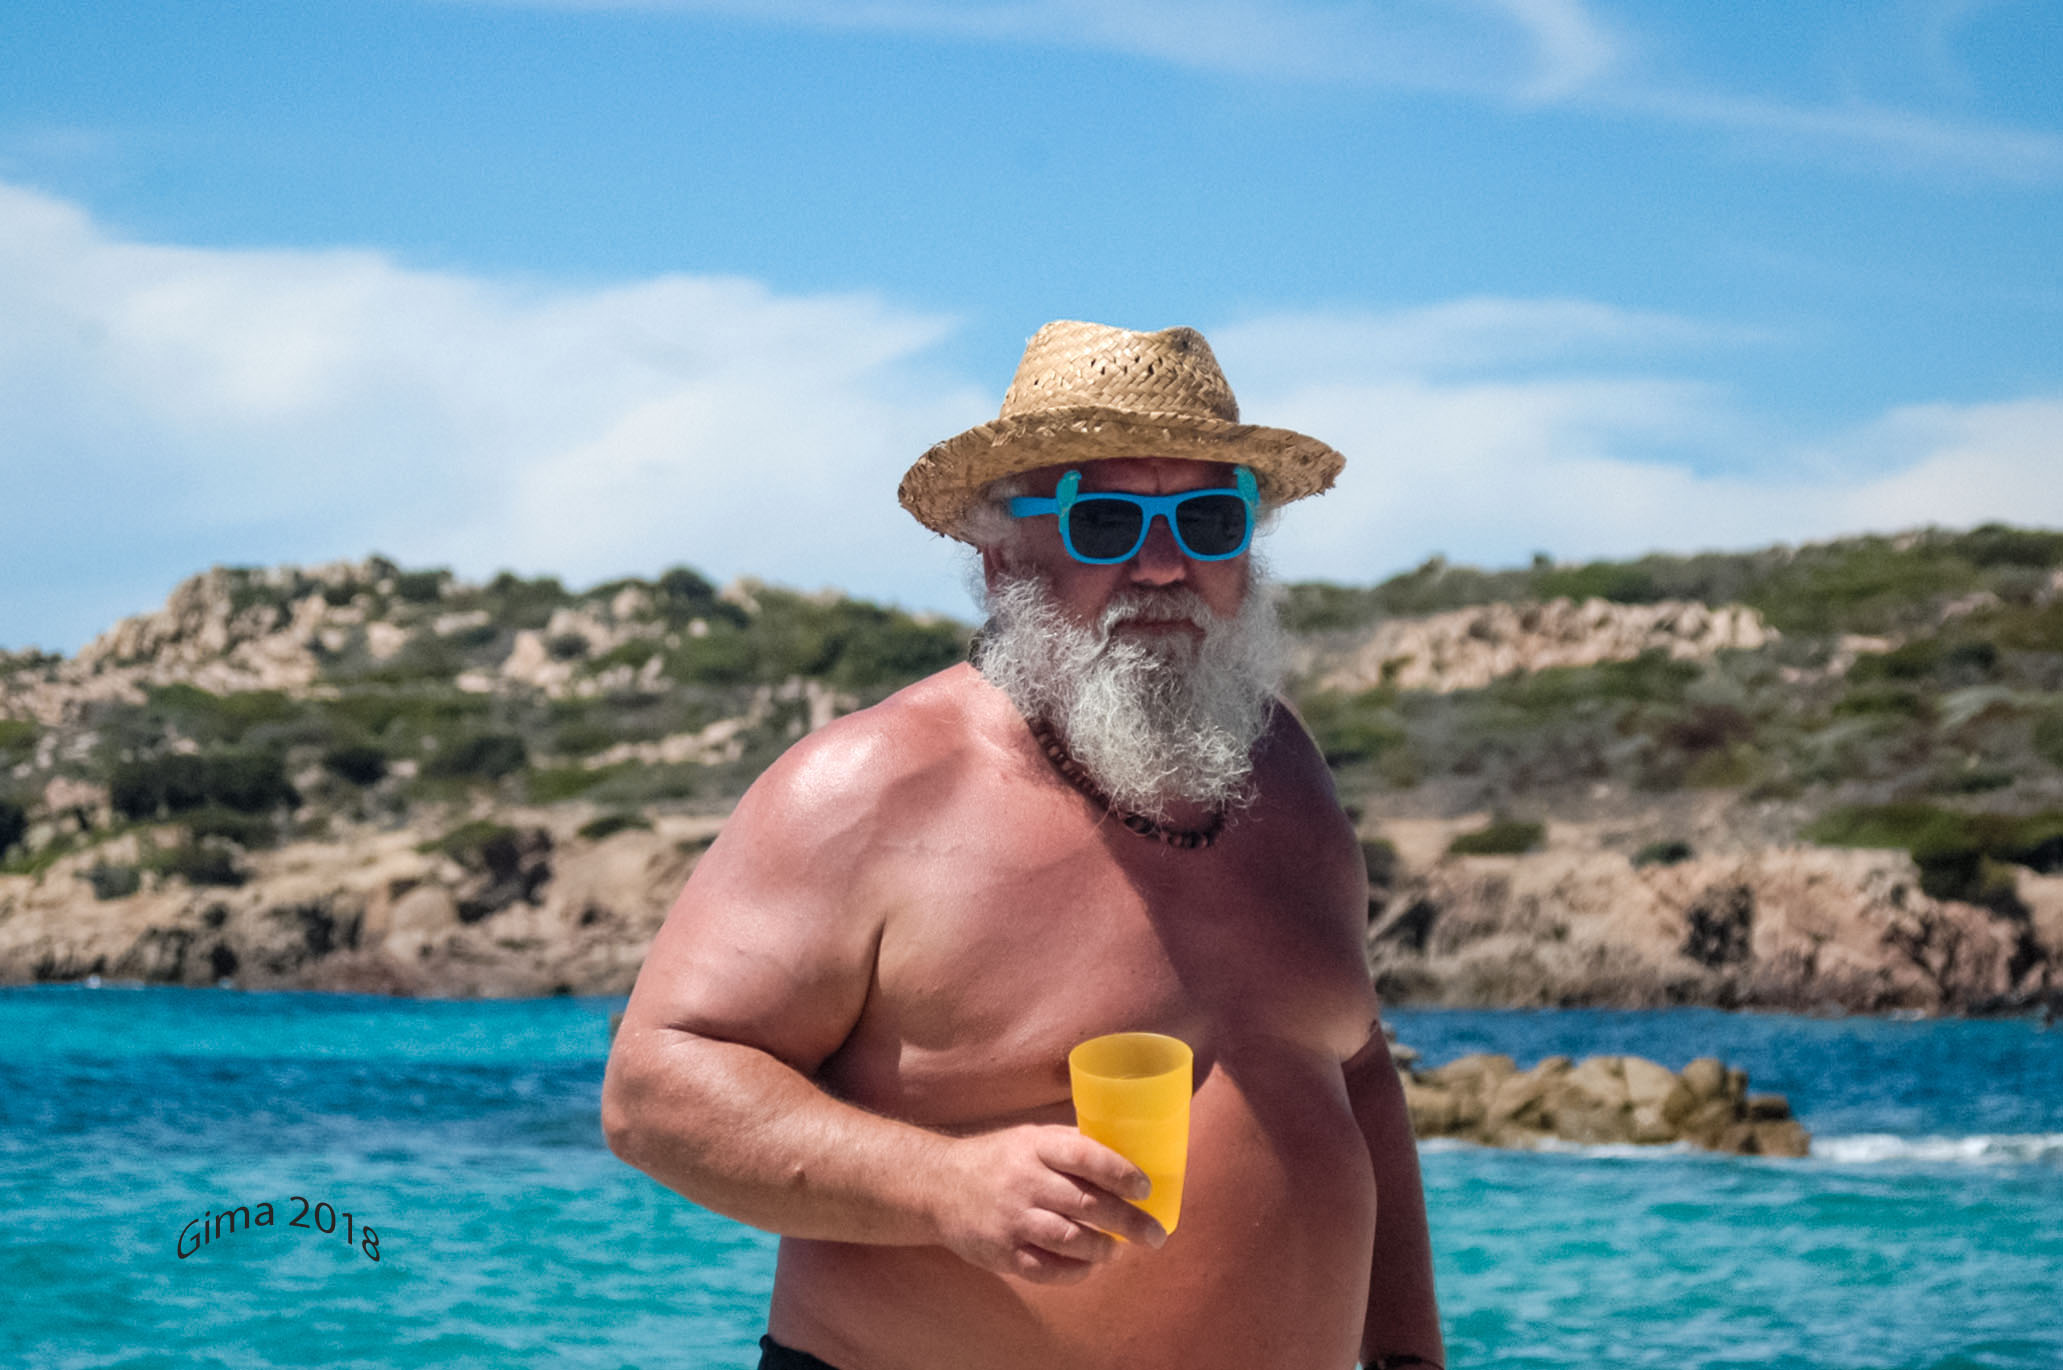 Santa Claus is also on holiday...